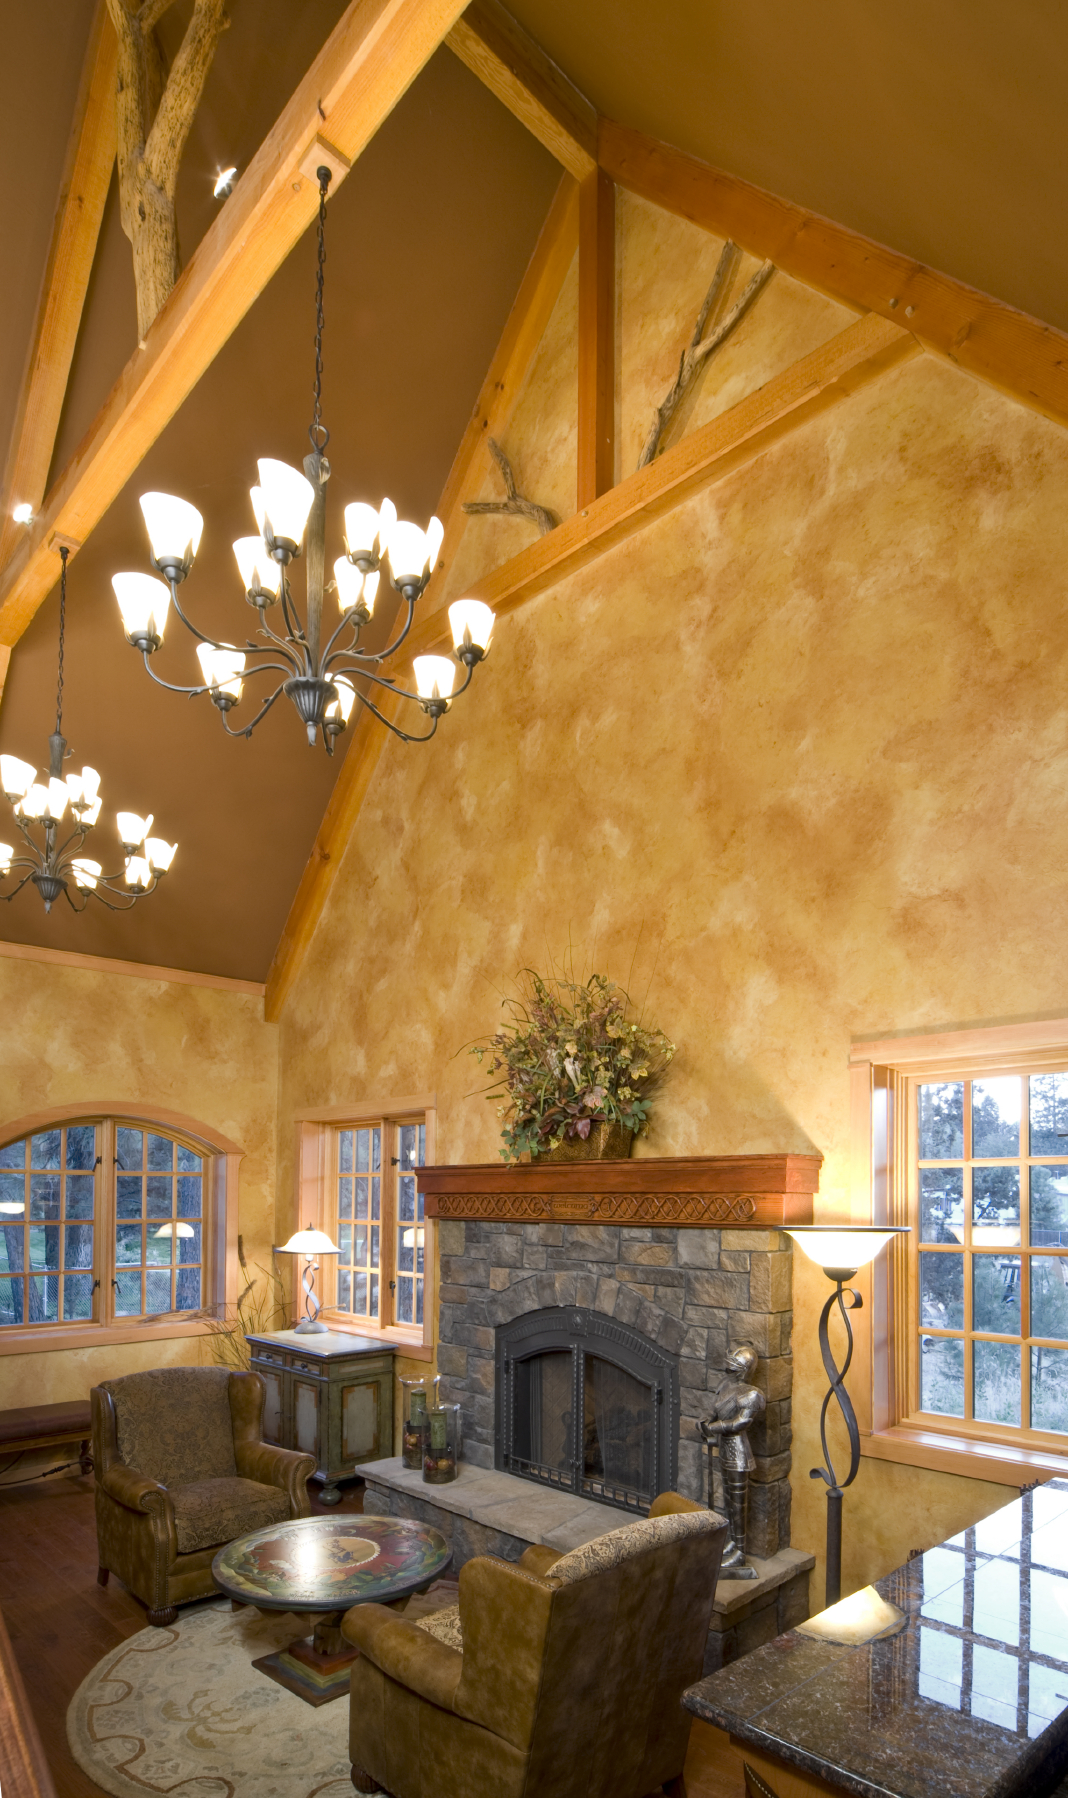 Soaring vaulted ceiling with exposed natural wood beams hovers over this cozy space, with large stone fireplace standing before a pair of leather roll arm chairs and painted circular coffee table.